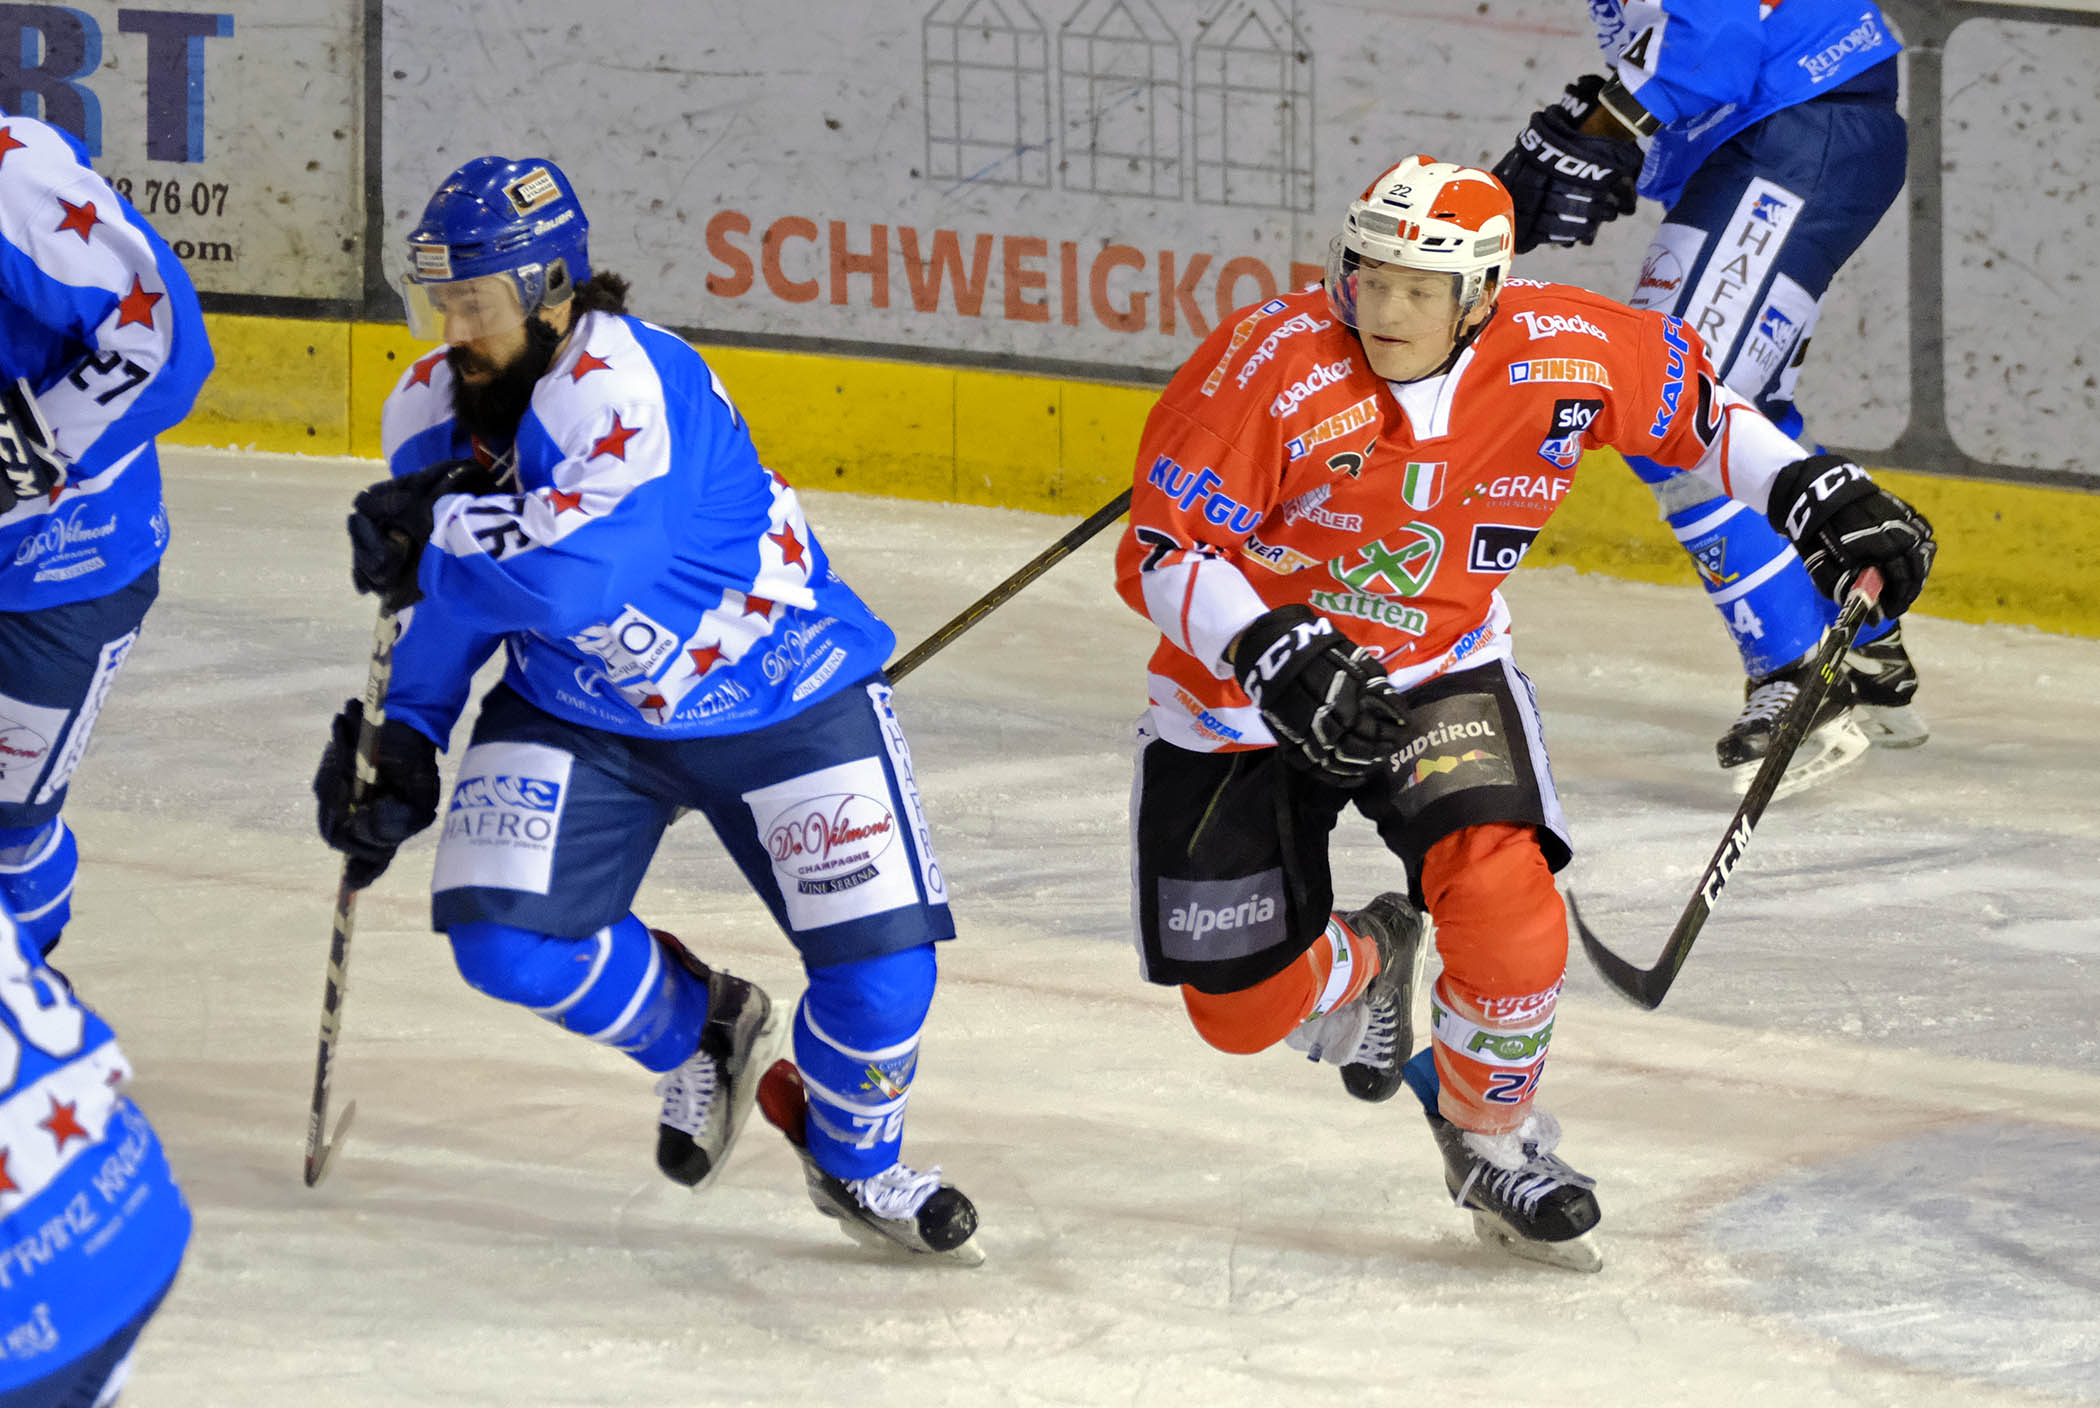 Max Pattis/Sky Alps Hockey League Playoff HF 1 Rittner Buam - SG Hafro Cortina 2-4